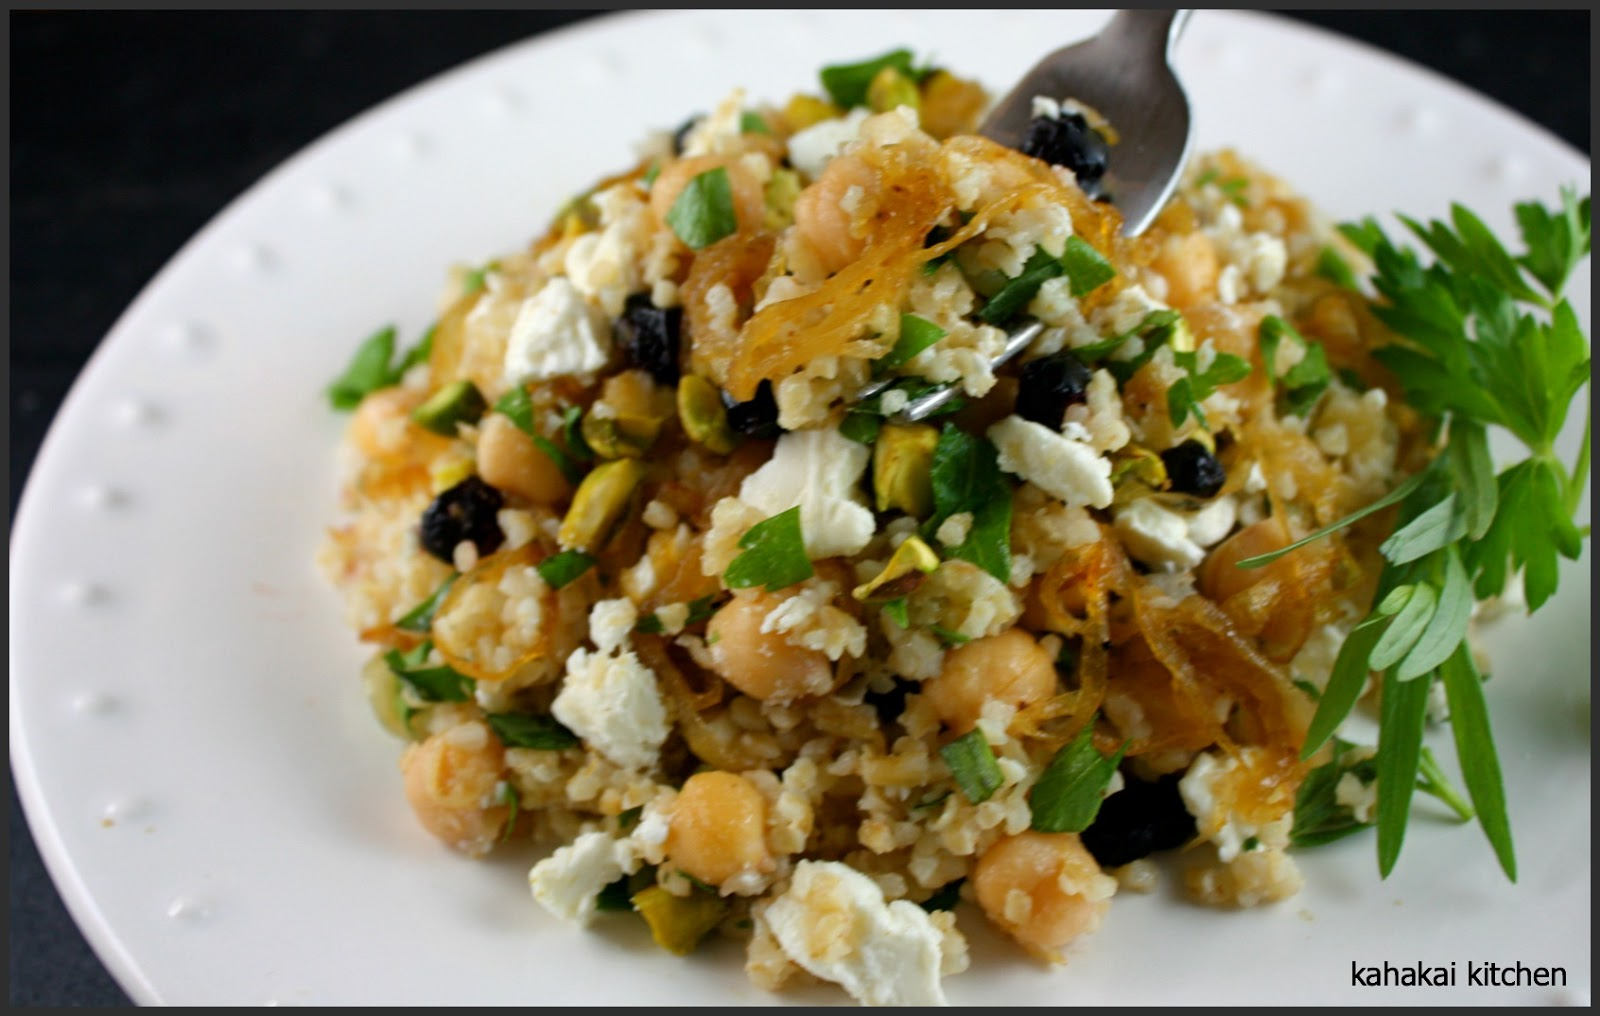 Kahakai Kitchen: Bulgur Salad with Chickpeas, Caramelized Onion, Feta ...